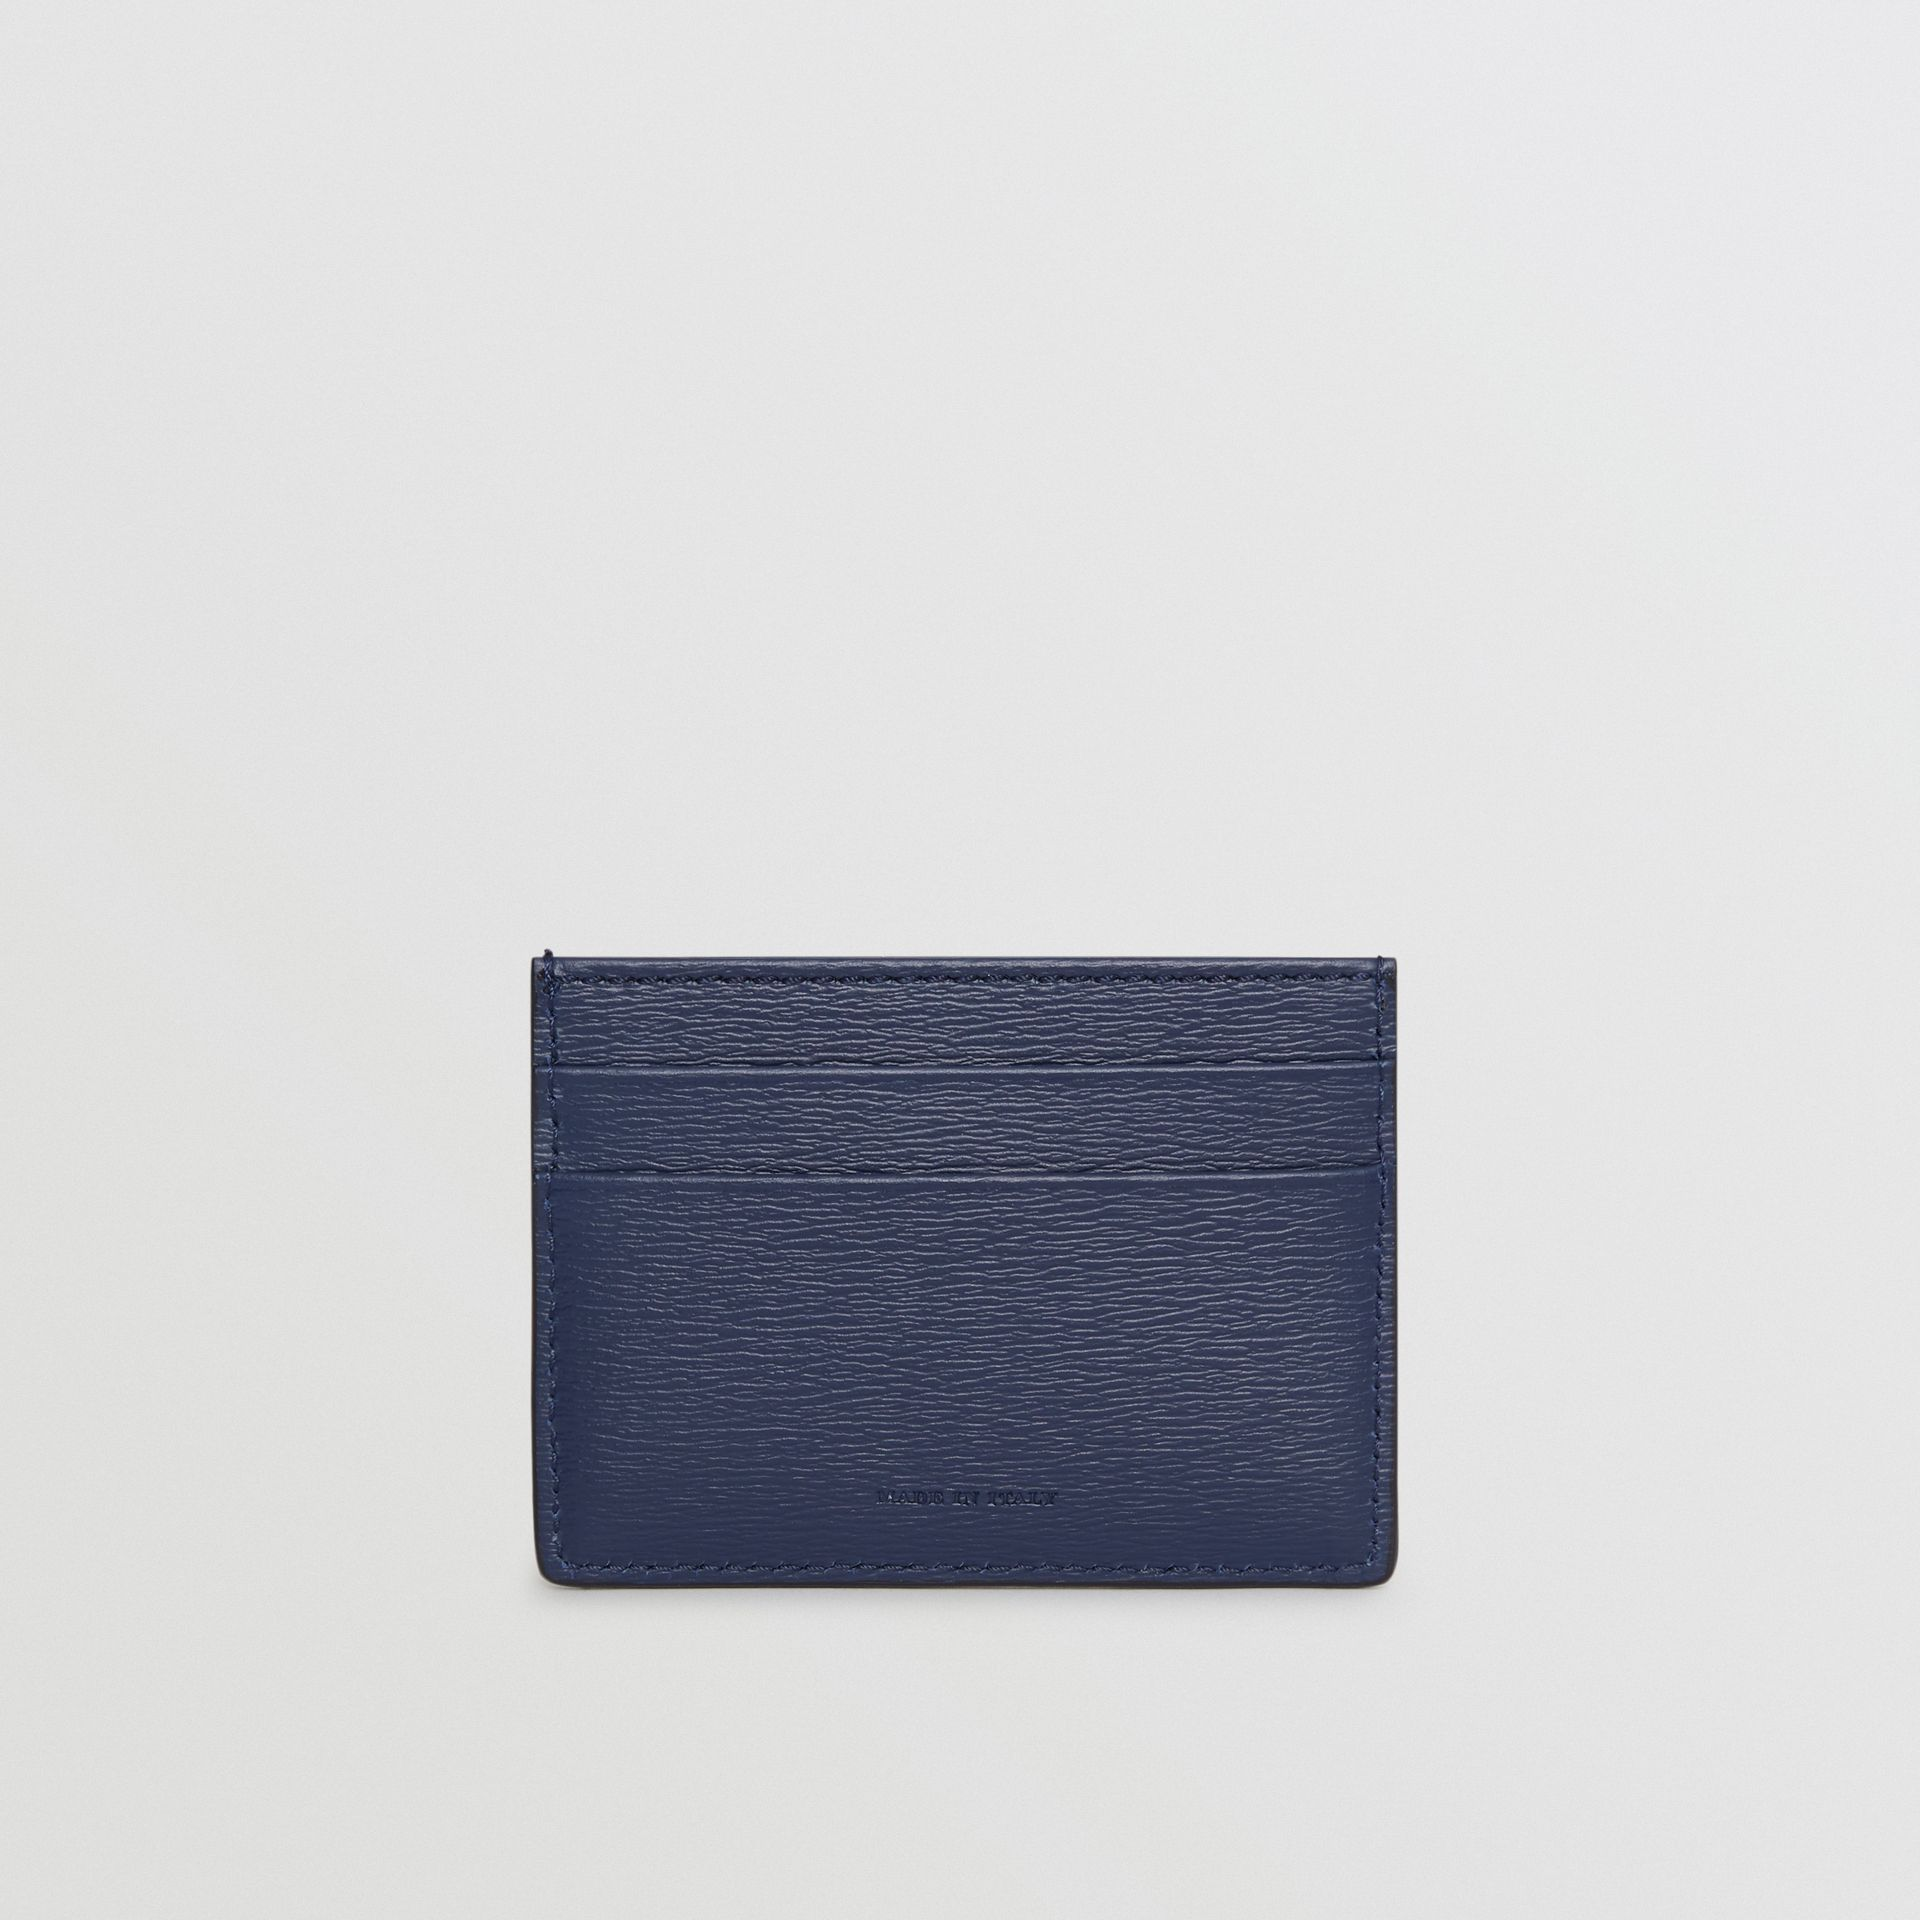 London Leather Card Case in Navy | Burberry - gallery image 4